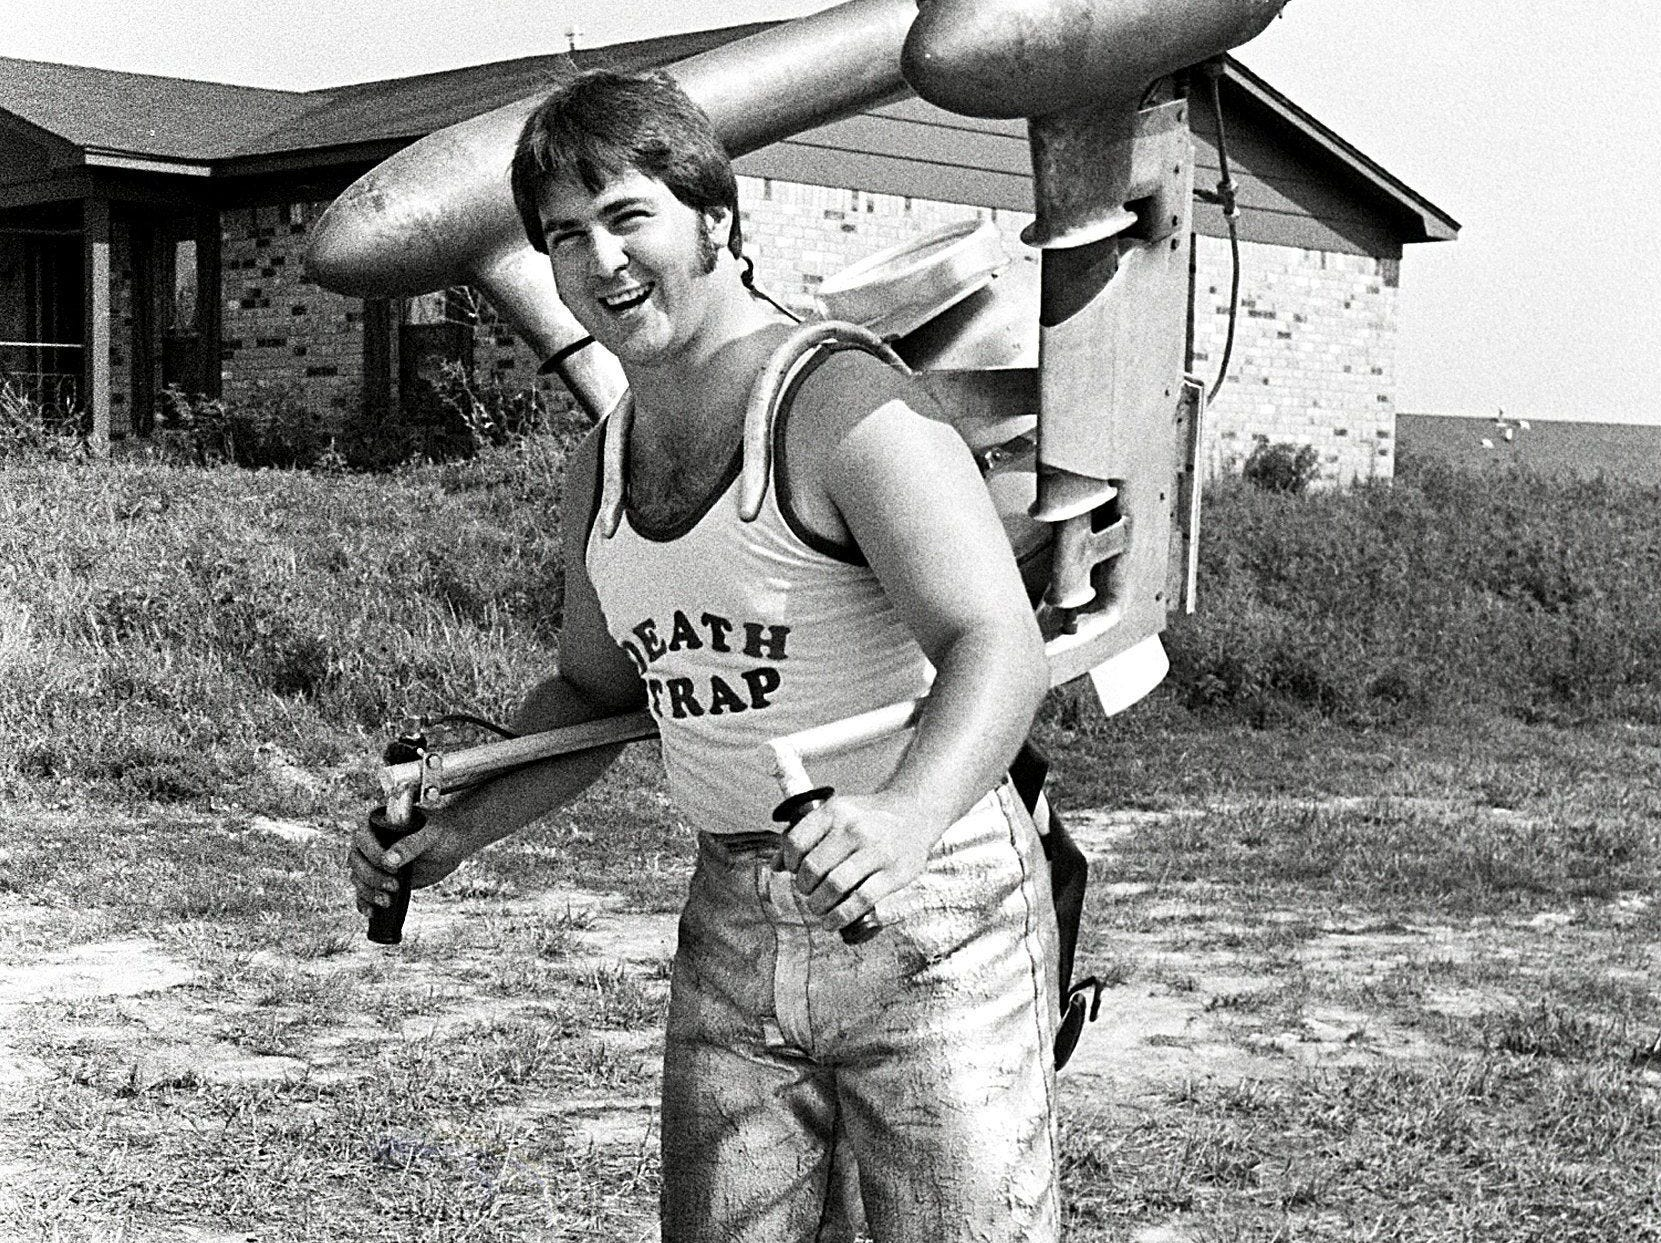 """Greg King, the 23-year-old """"Mississippi Mad Man"""", is the aspiring Evel Knievel of Walls, MS. The mild-mannered meat truck driver on weekdays hopes to zoom past Guinness world records on weekends with his roller skates and jet engine in August 1979. His equipment includes an 80-pound jet engine on his back and a pair of $500 roller skates on his feet."""